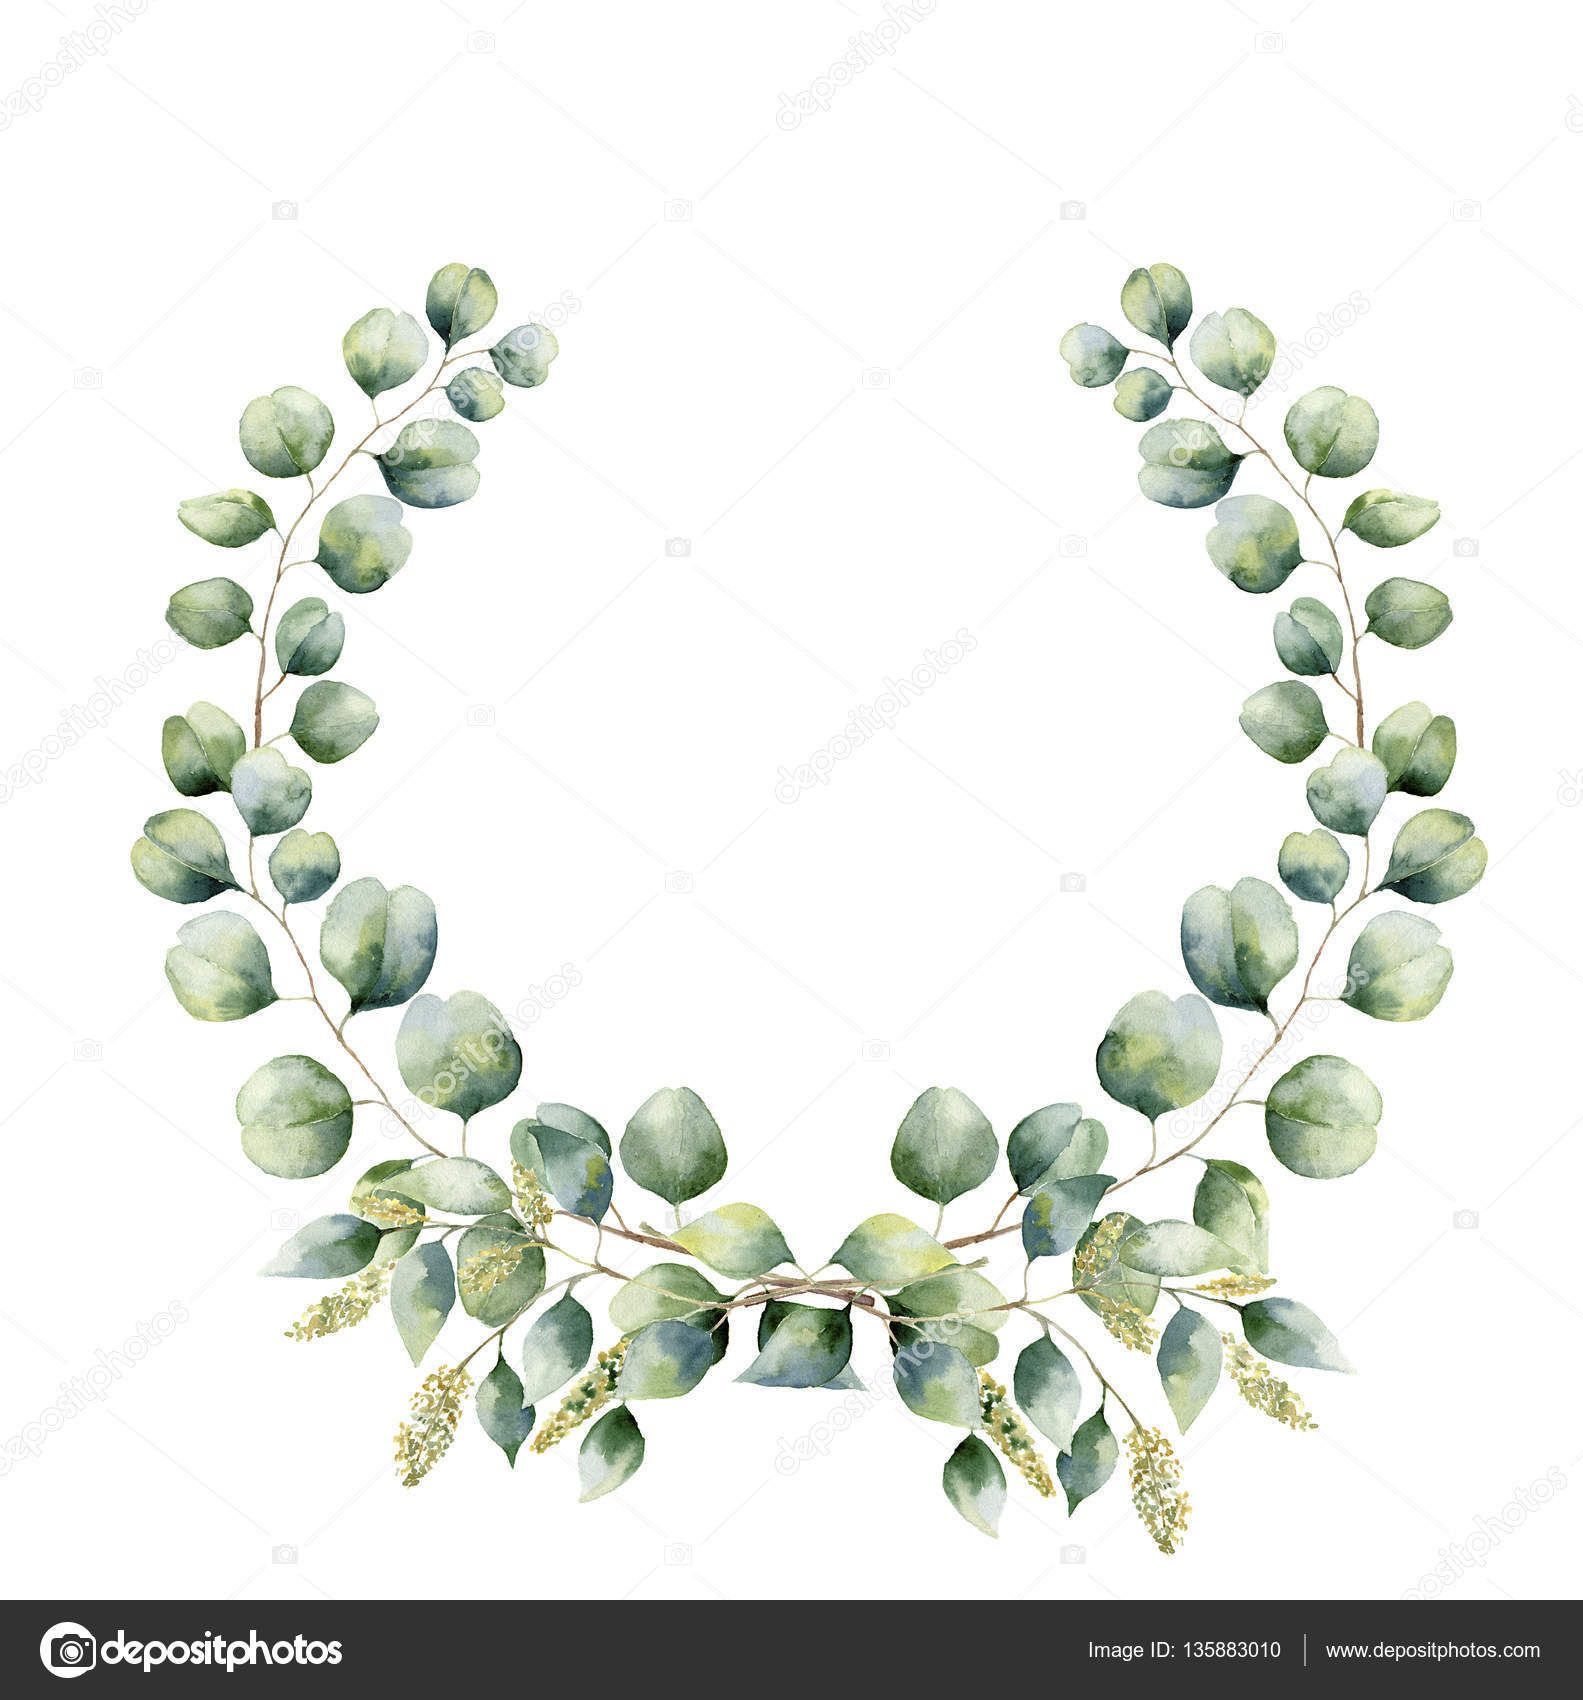 Image result for watercolor eucalyptus wreath.